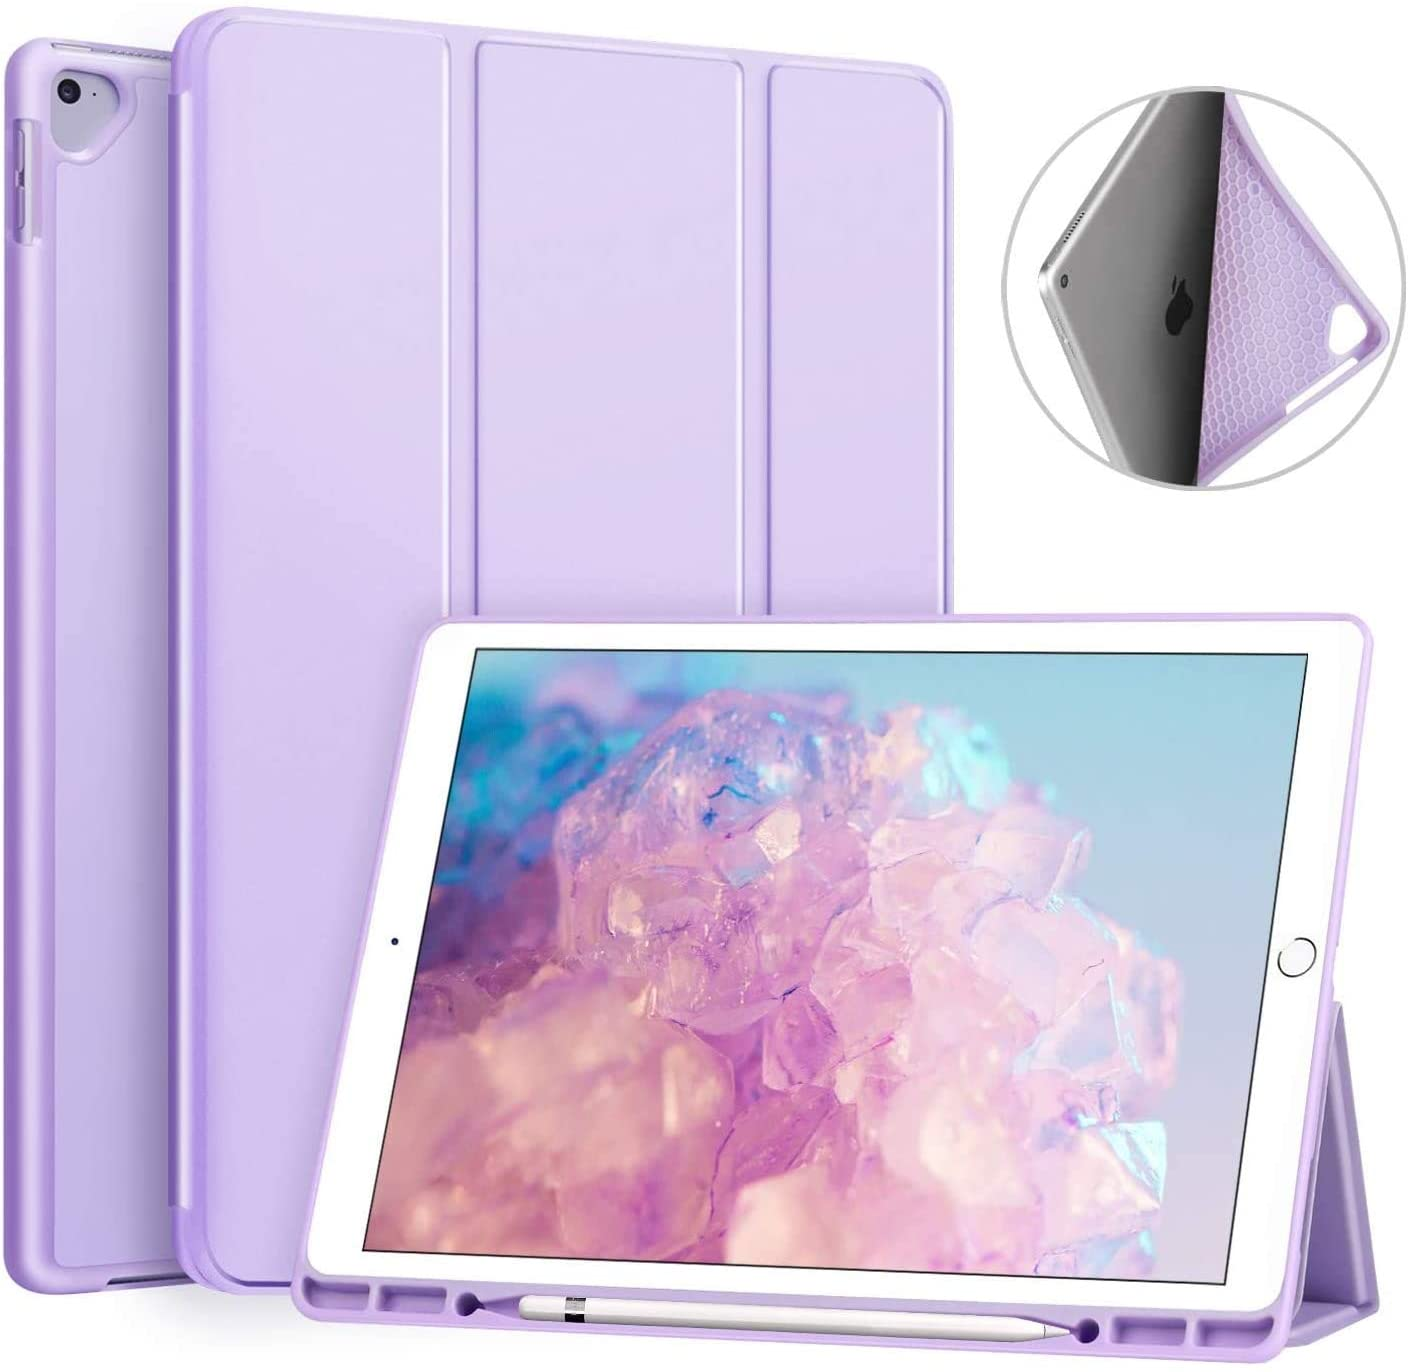 Ztotop Case for iPad Pro 12.9 Inch 2017/2015 with Pencil Holder,Lightweight Soft TPU Back Cover and Trifold Stand with Auto Sleep/Wake for iPad Pro 12.9 Inch(1st & 2nd Generation),Purple